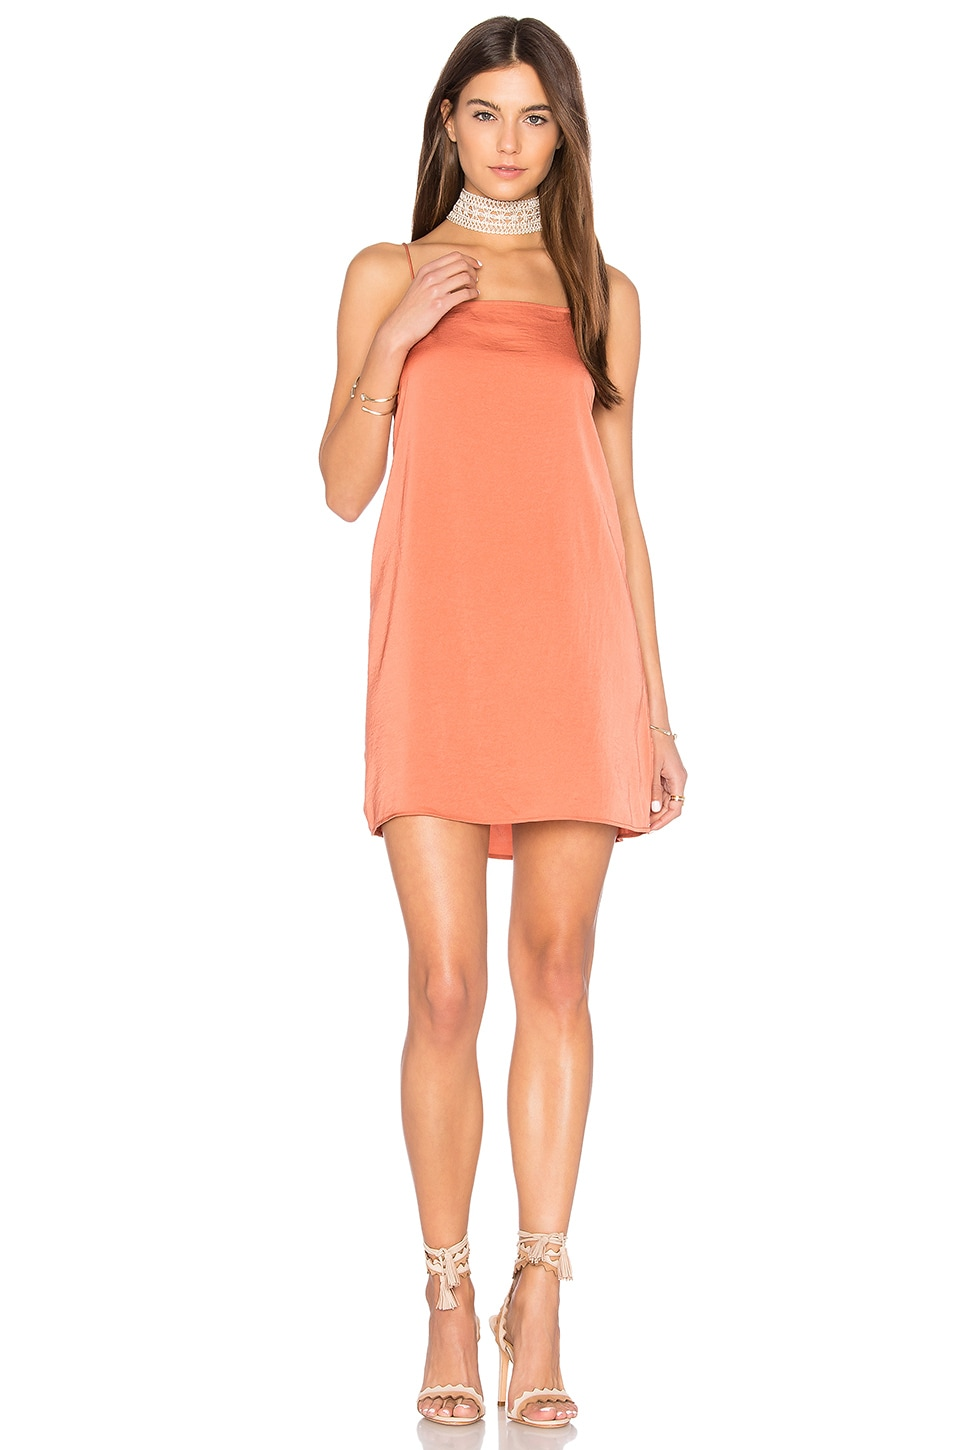 The Nightingale Cami Dress by The Fifth Label